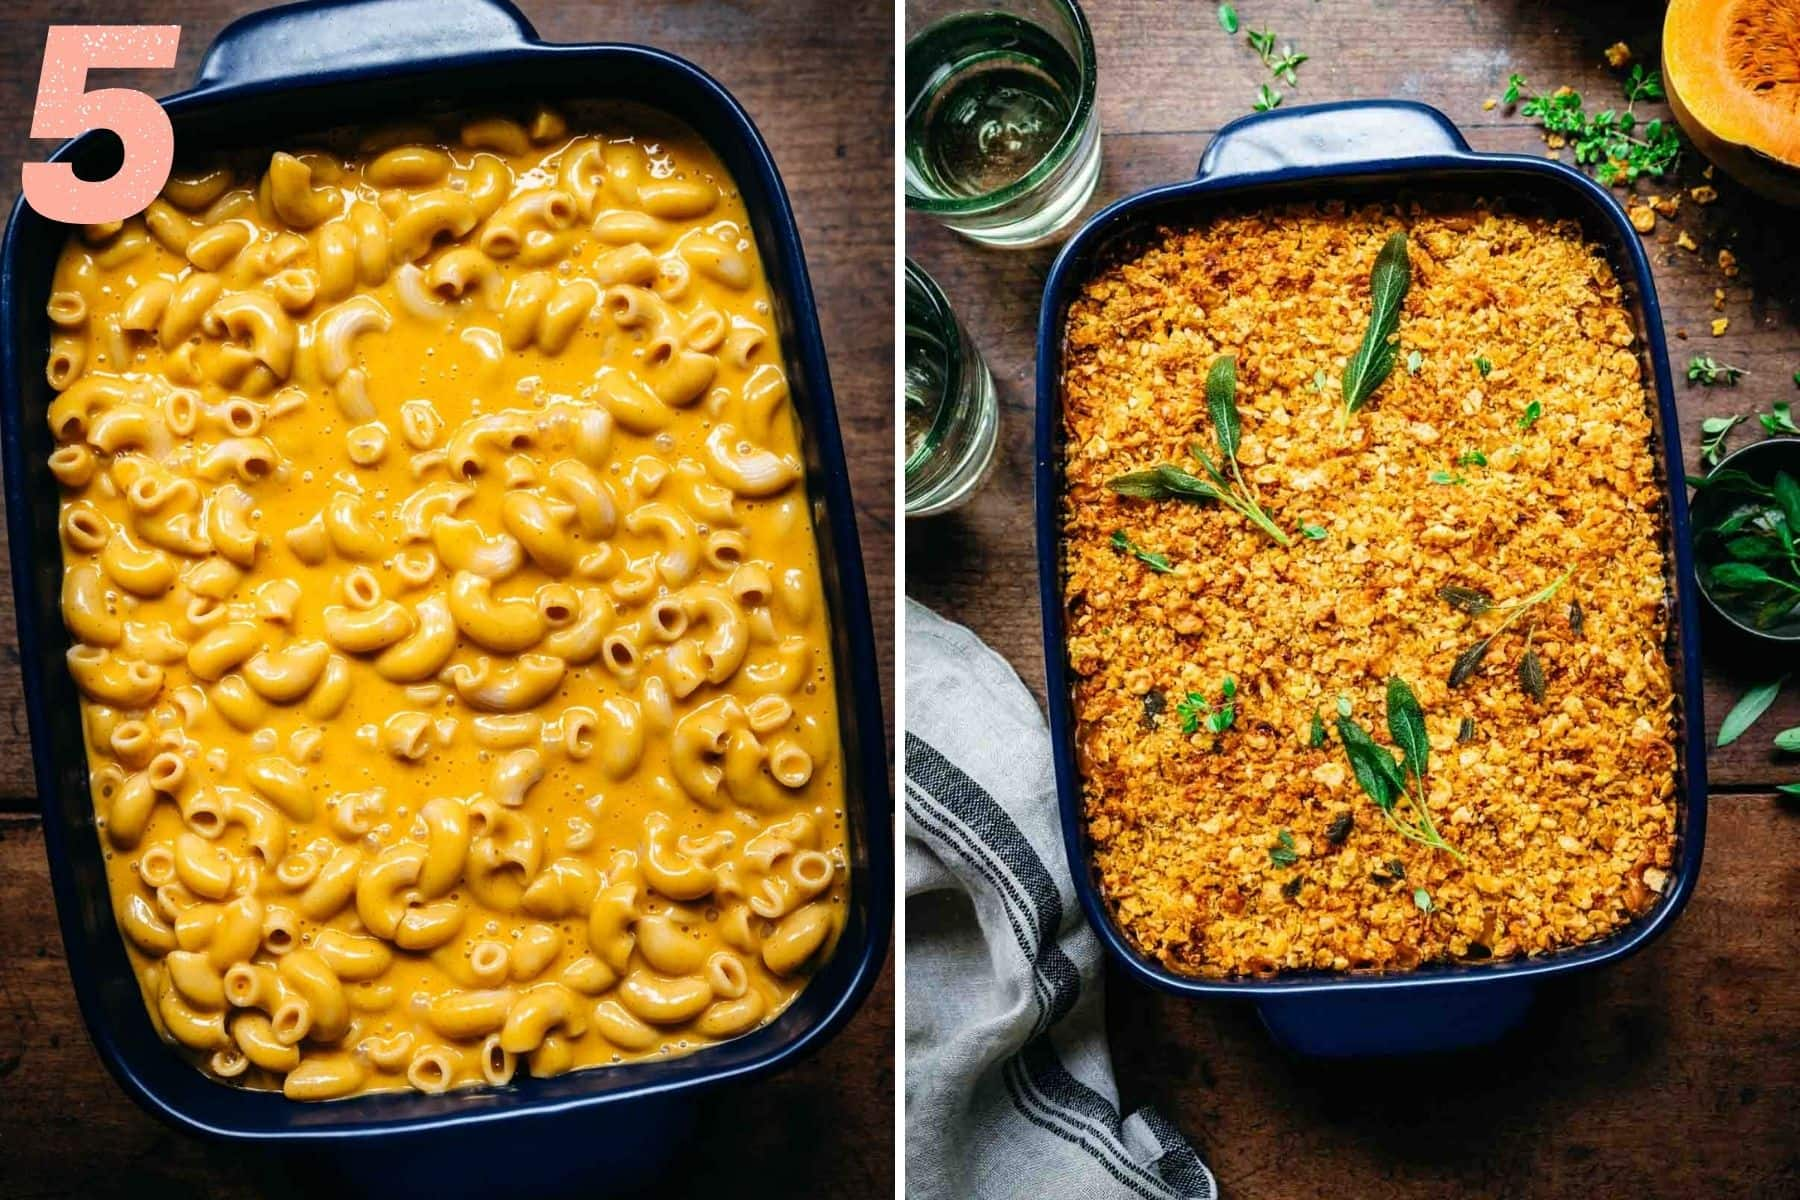 Overhead view of butternut squash mac and cheese before and after baking.